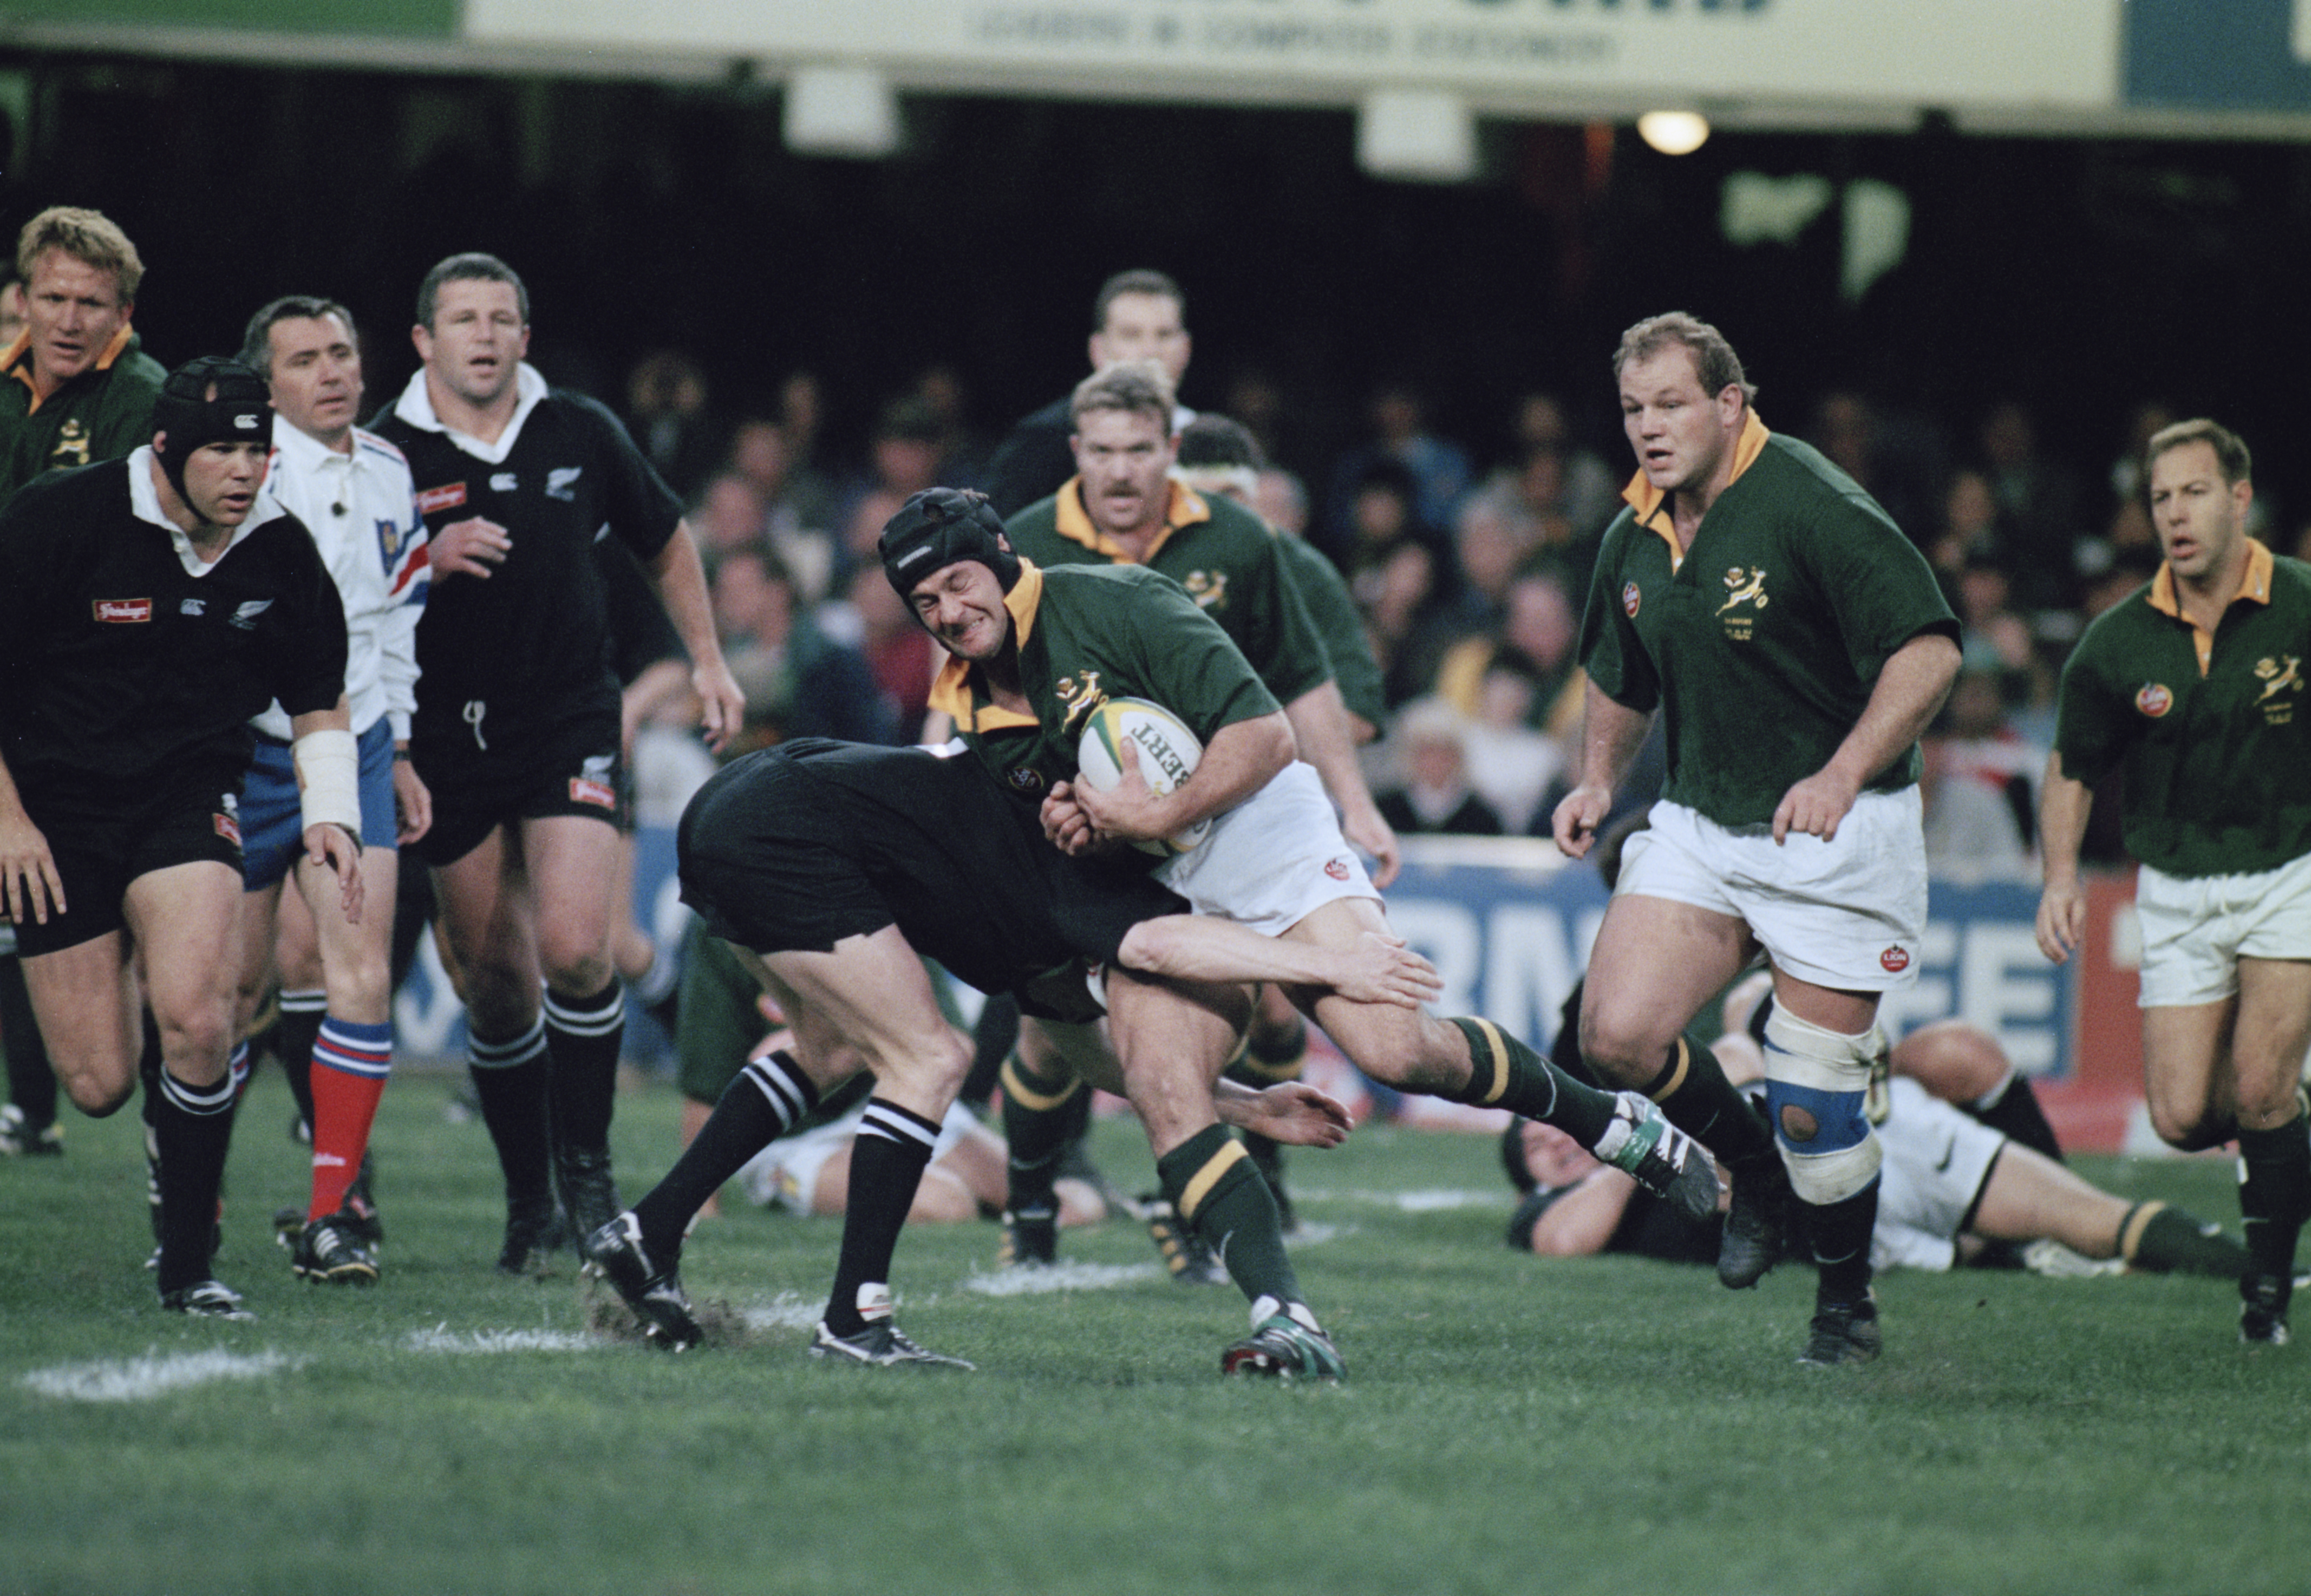 File: South African rugby player Ruben Kruger (1970 - 2010, centre) is tackled during an international against New Zealand, Durban, 17th August 1996. New Zealand won the match 23-19.